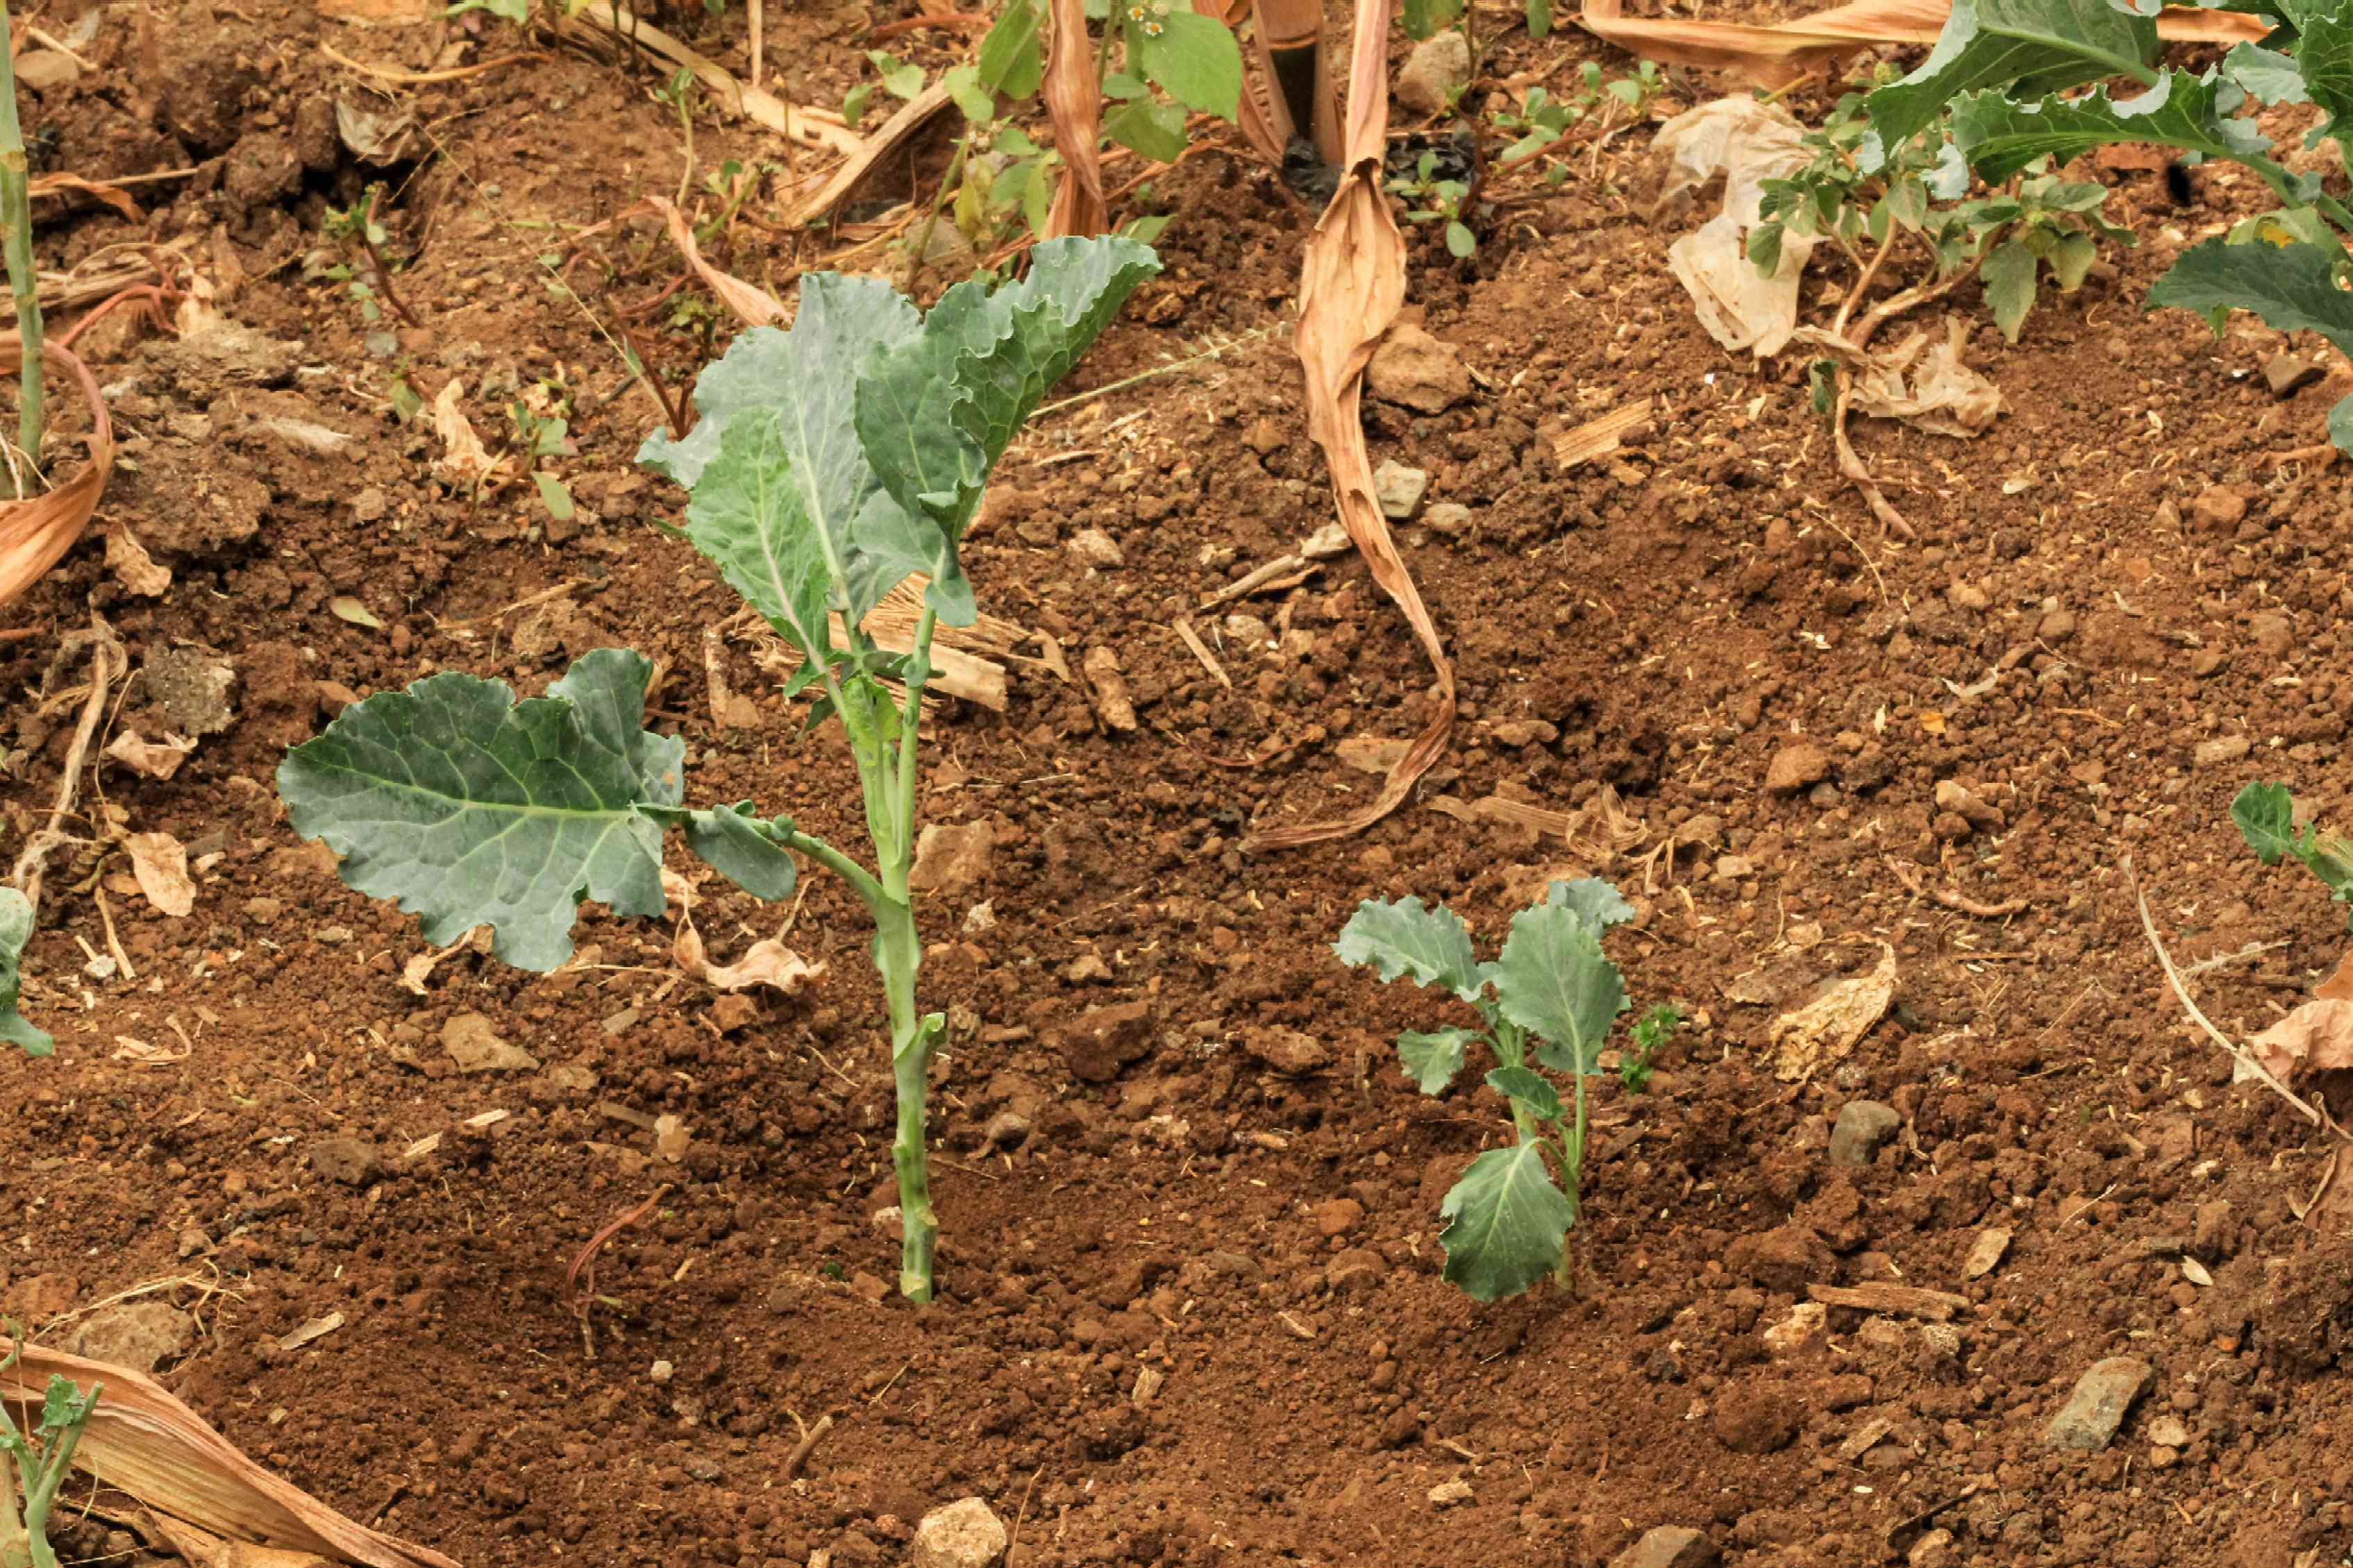 Same vegetable plants in soil at different maturity levels in vegetable garden